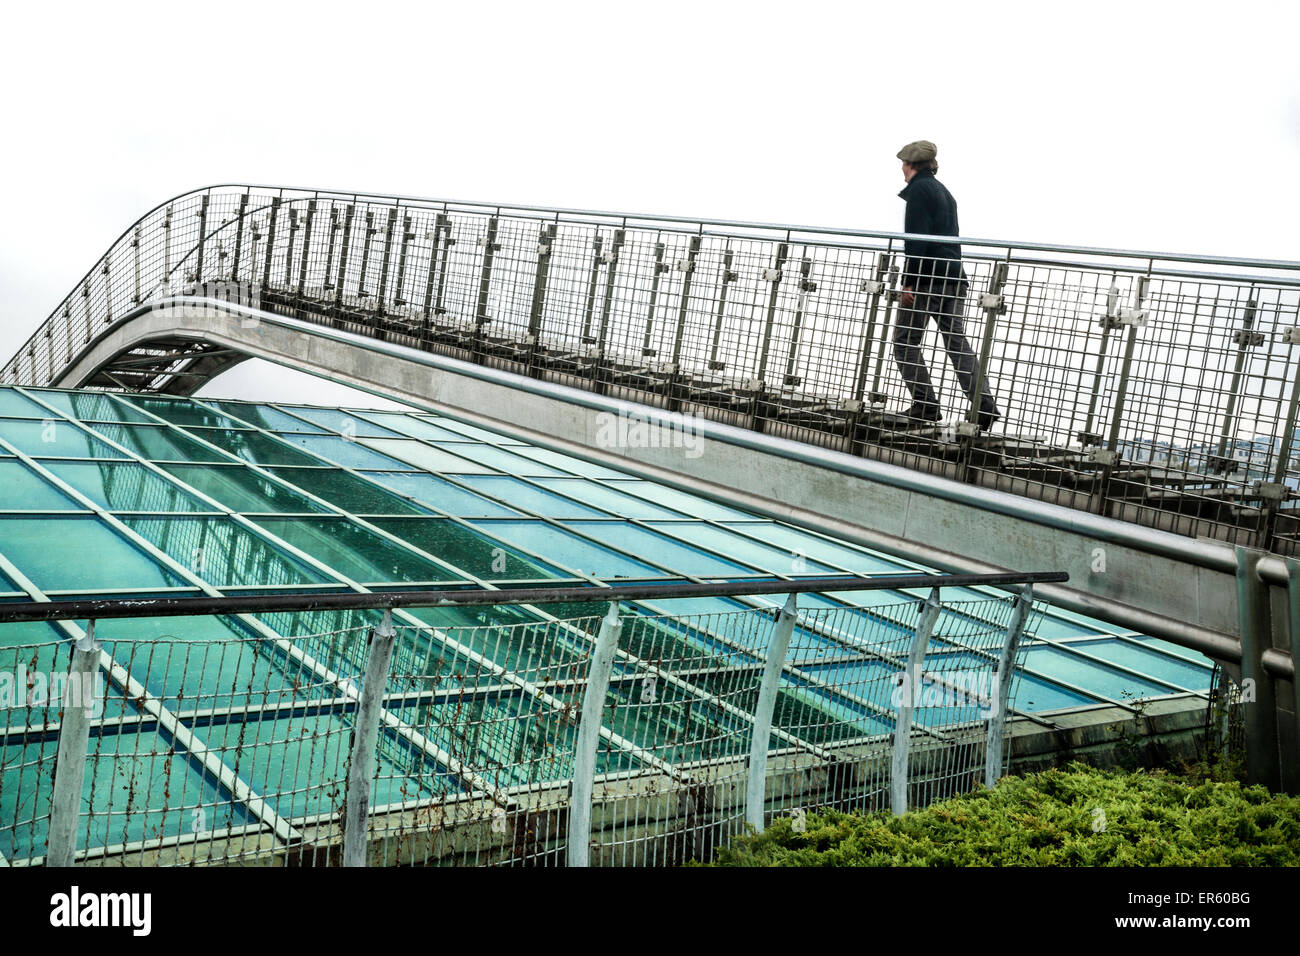 Man ascends a metal bridge over a glass roof at the Warsaw University Library garden, designed by Irena Bajerska Stock Photo